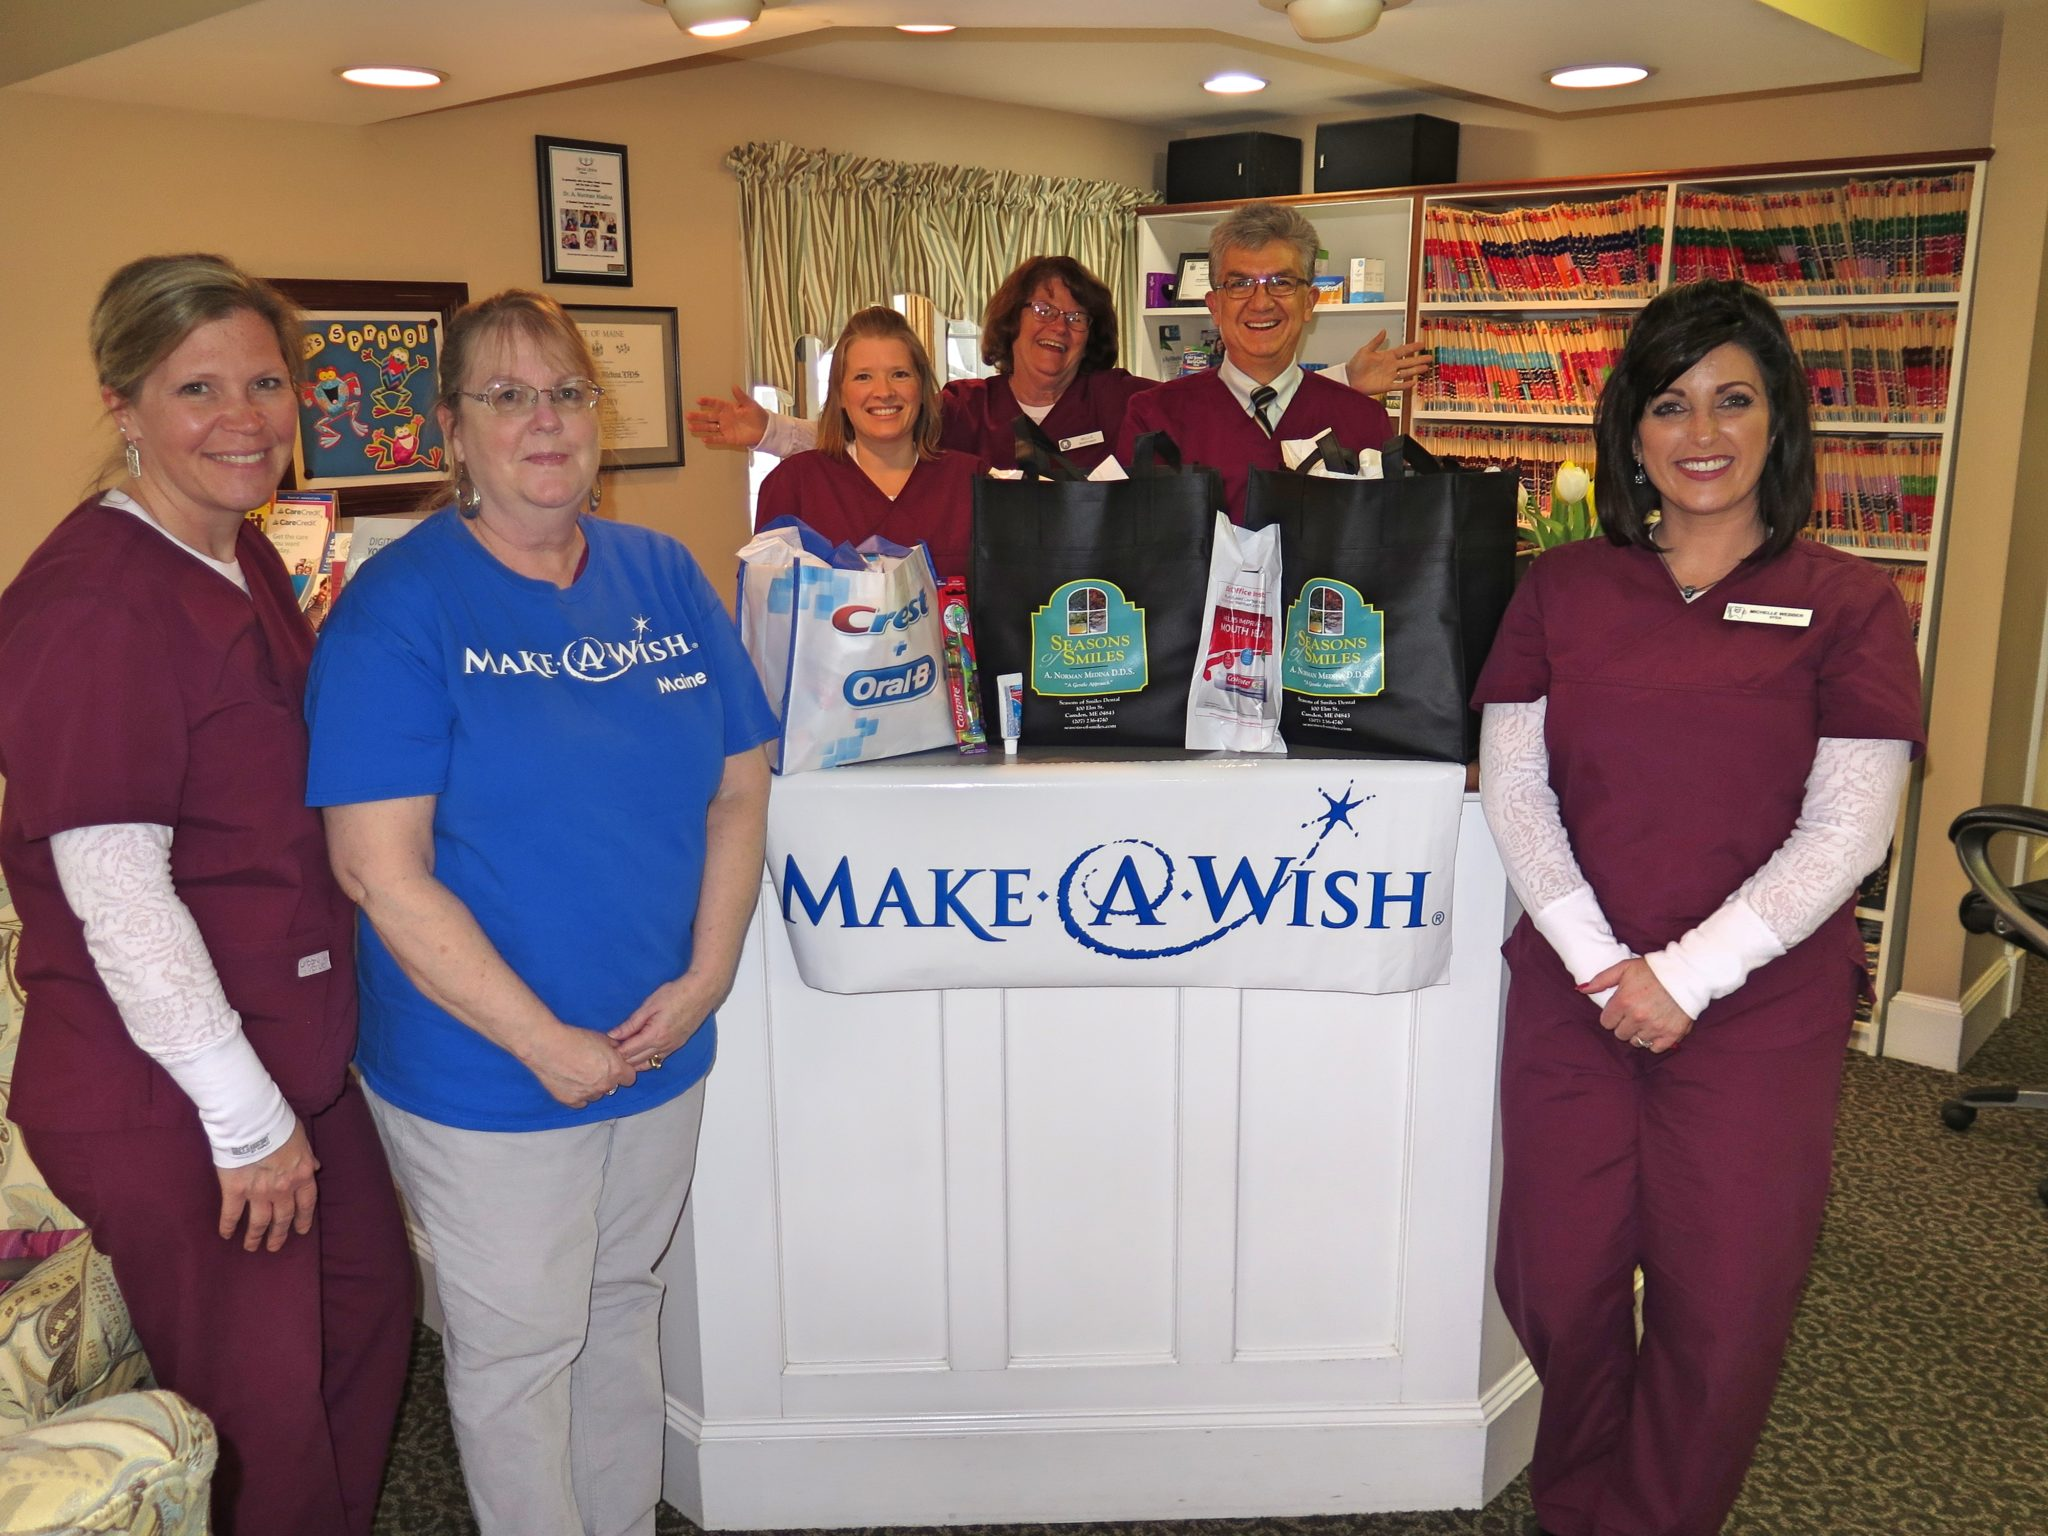 Make a Wish visits Seasons of Smiles Dental